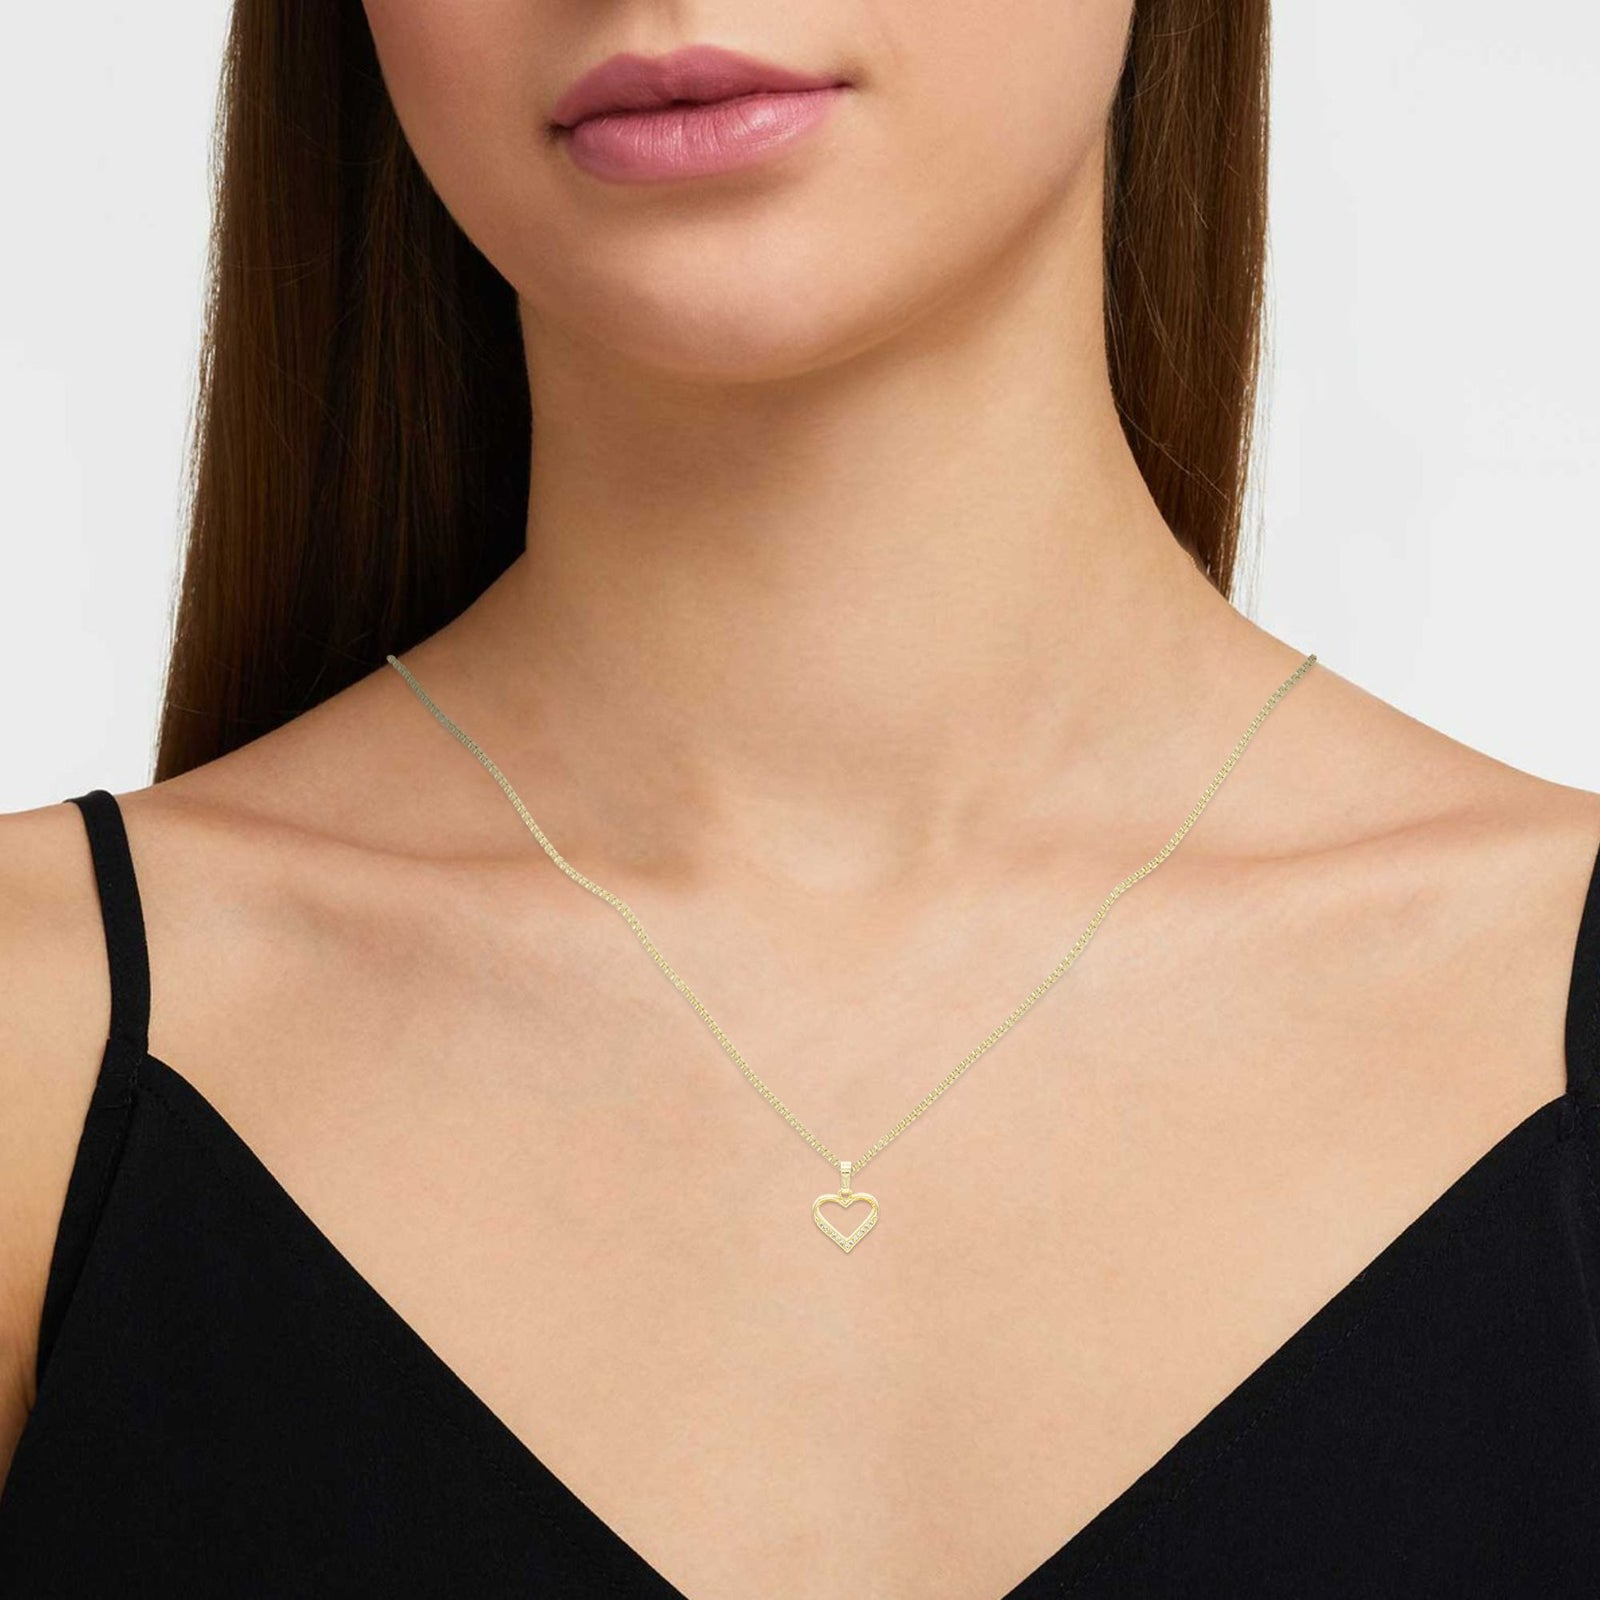 Heart Delicate Cubic Zirconia Pendant With Necklace Set 14K Gold Filled